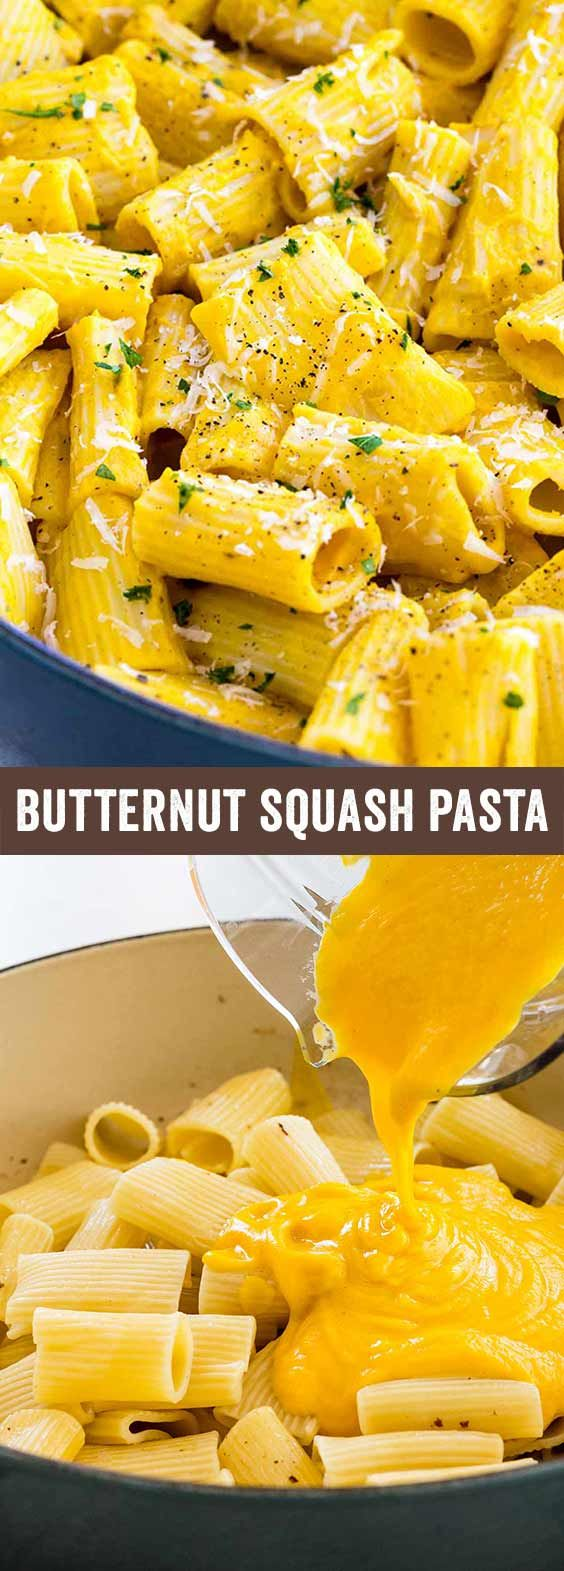 Creamy butternut squash pasta sauce, who says satisfying can't be healthy? This season, skip the marinara recipes and opt for a nutrient-loaded sauce. via @foodiegavin